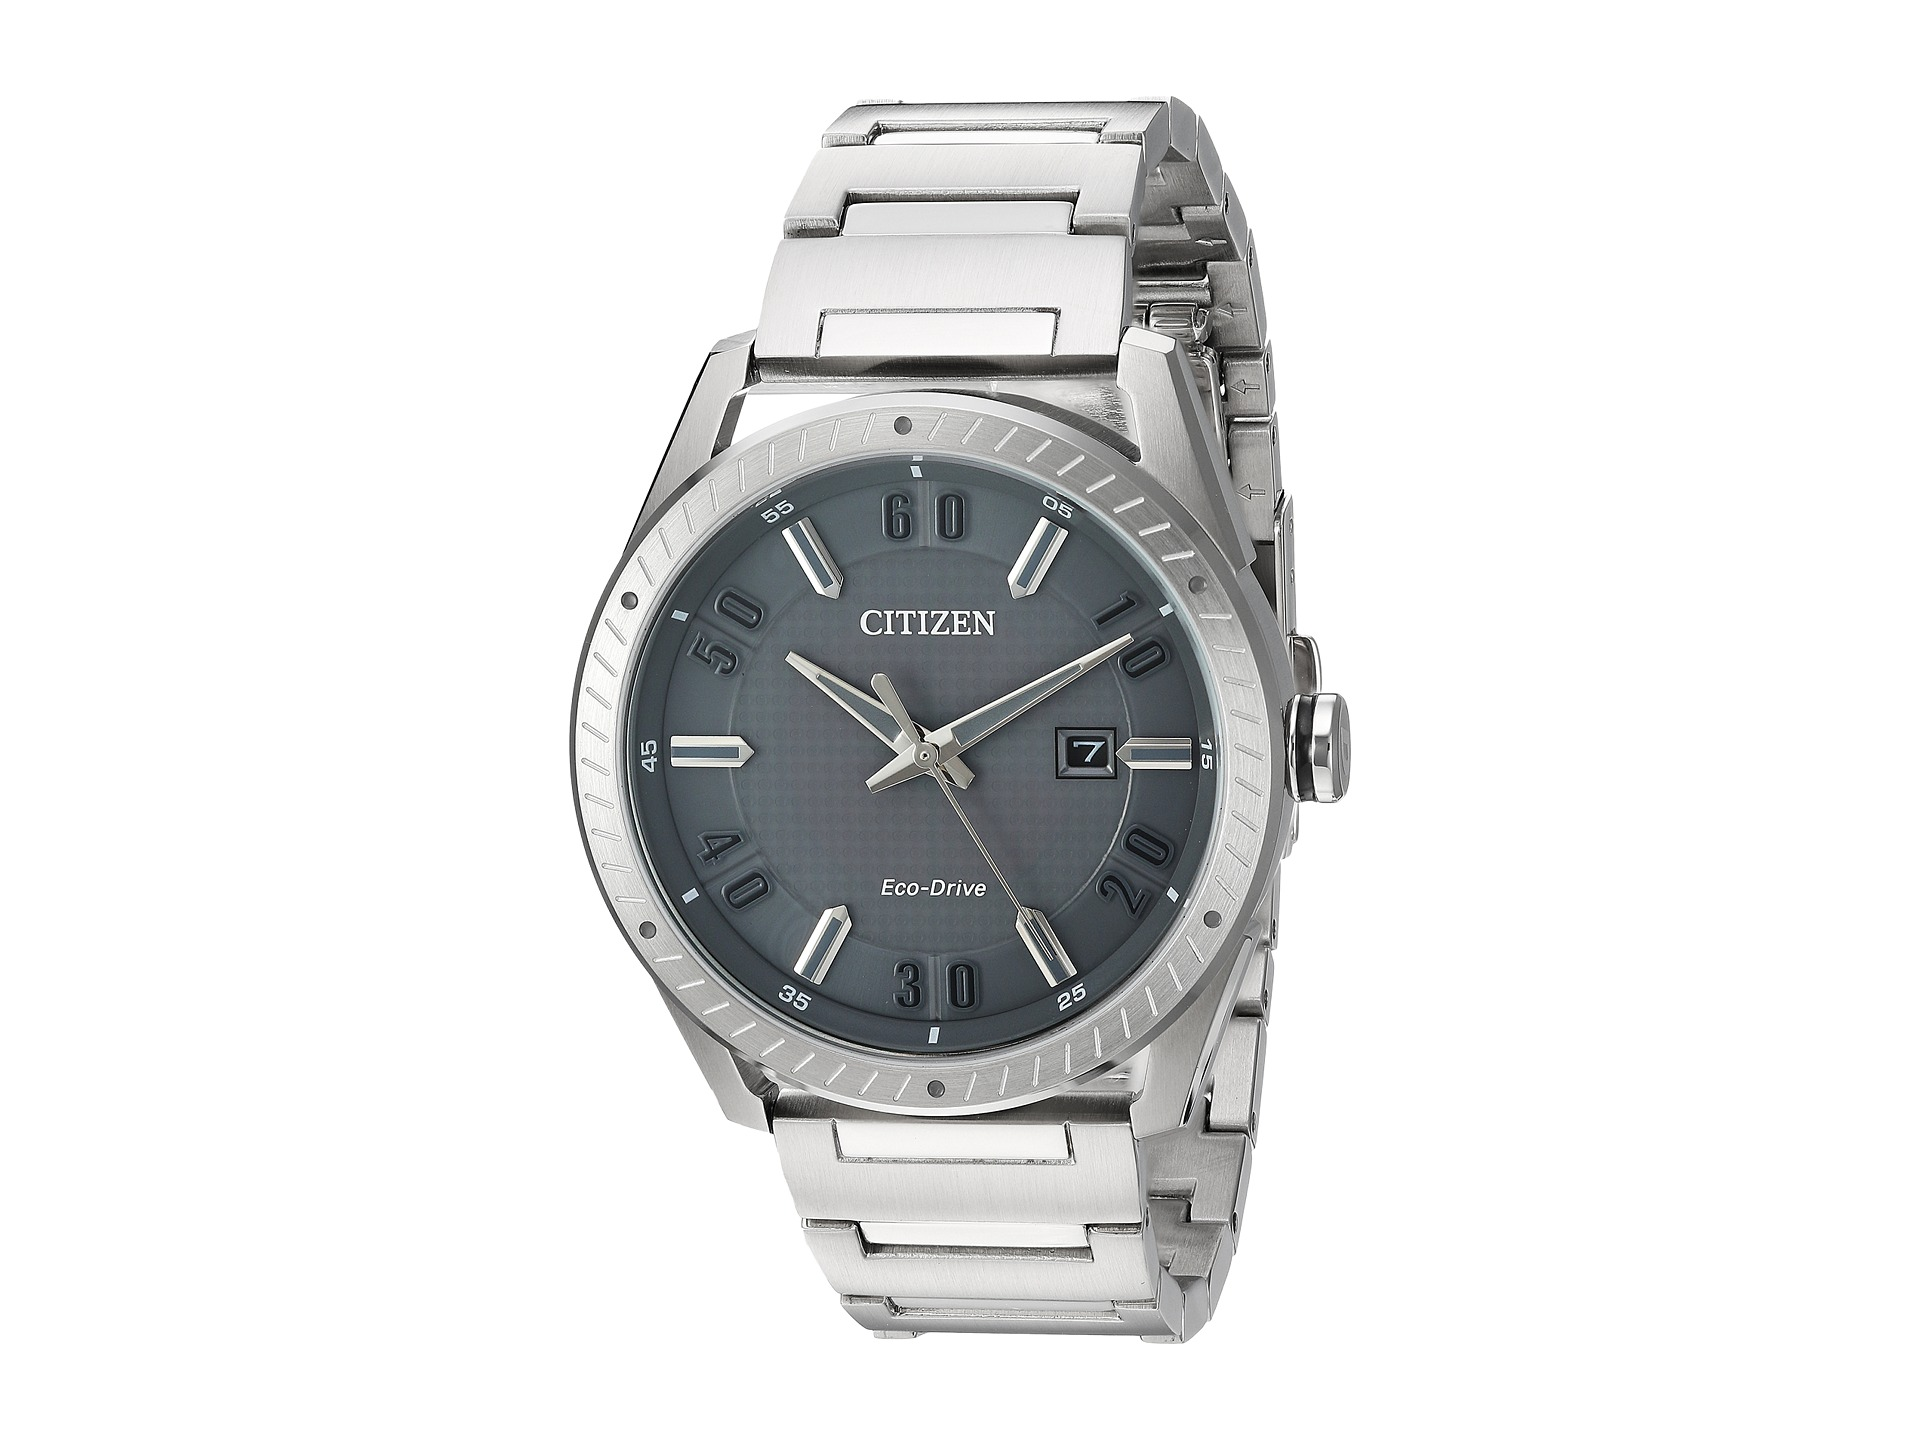 Details about Citizen Men s Eco-Drive Grey Dial Stainless Steel Watch  BM6991-52H 451f9fcdf